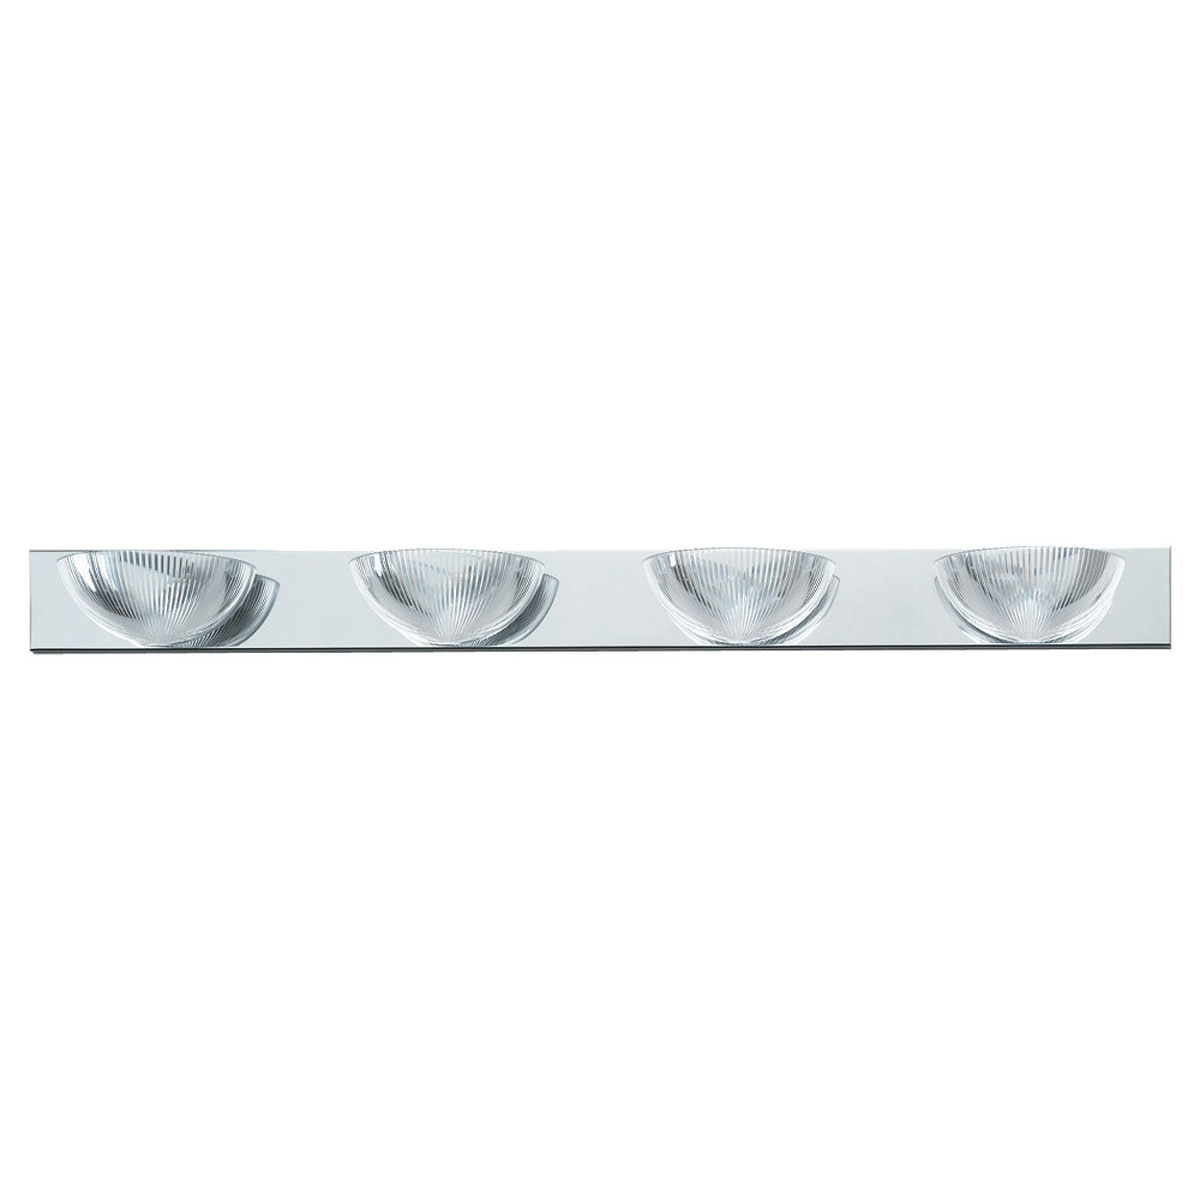 Sea Gull Lighting Oceanic 4 Light Bath Vanity in Chrome 4725-05